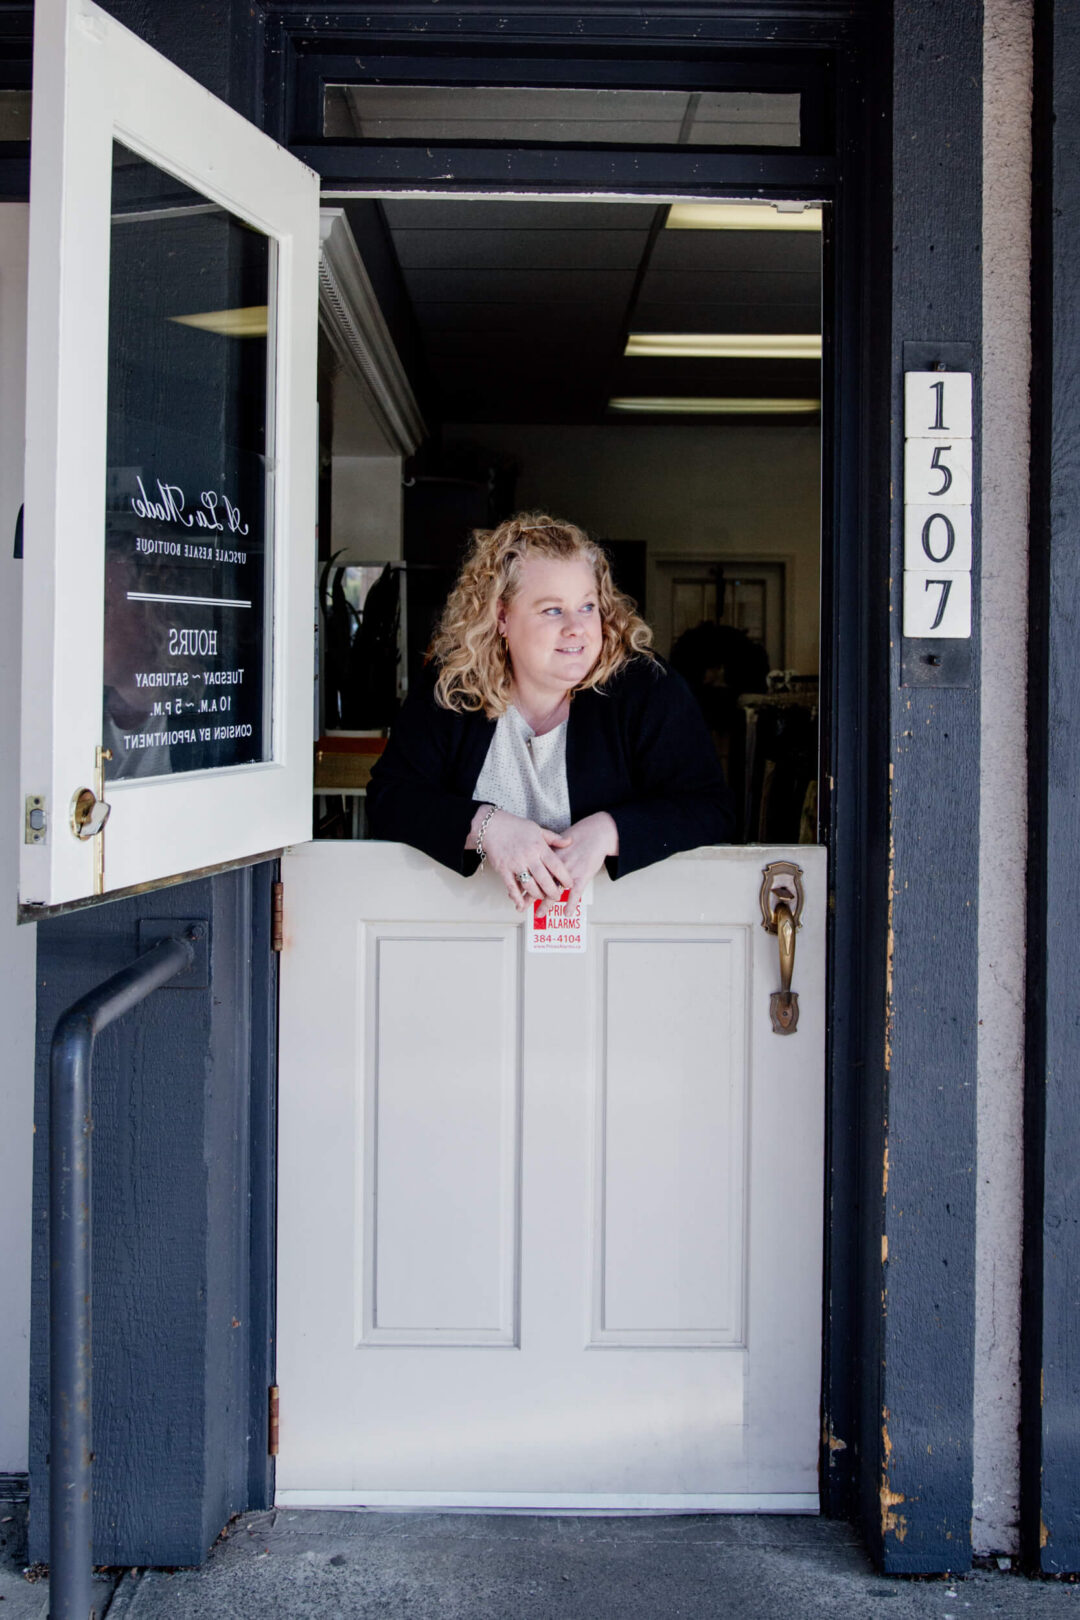 A shopowner leans on the doors at the front of her store.,